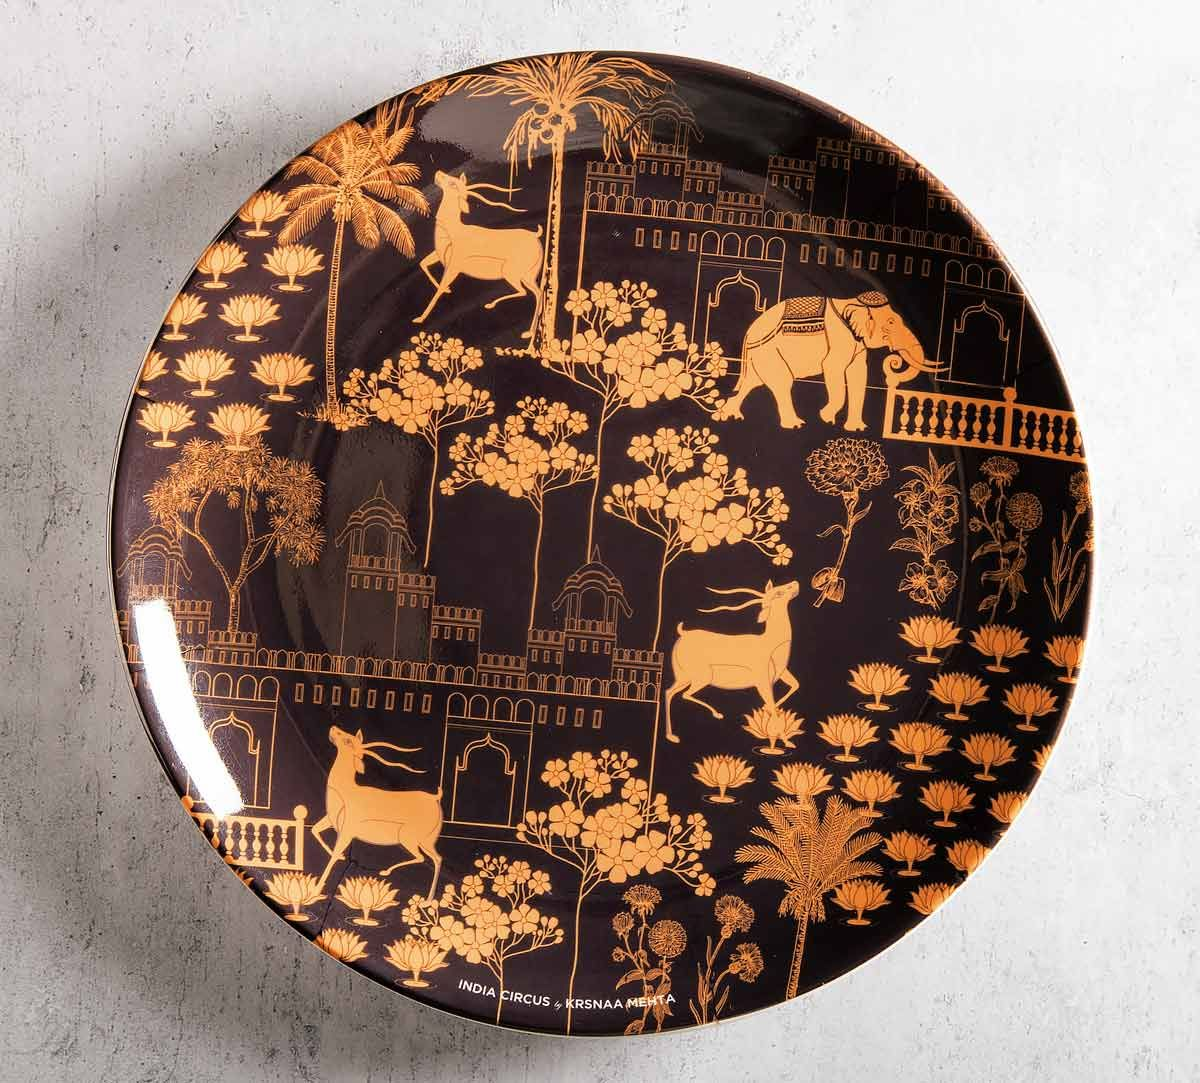 India Circus Palatial Courtyard 10 inch Decorative and Snacks Platter